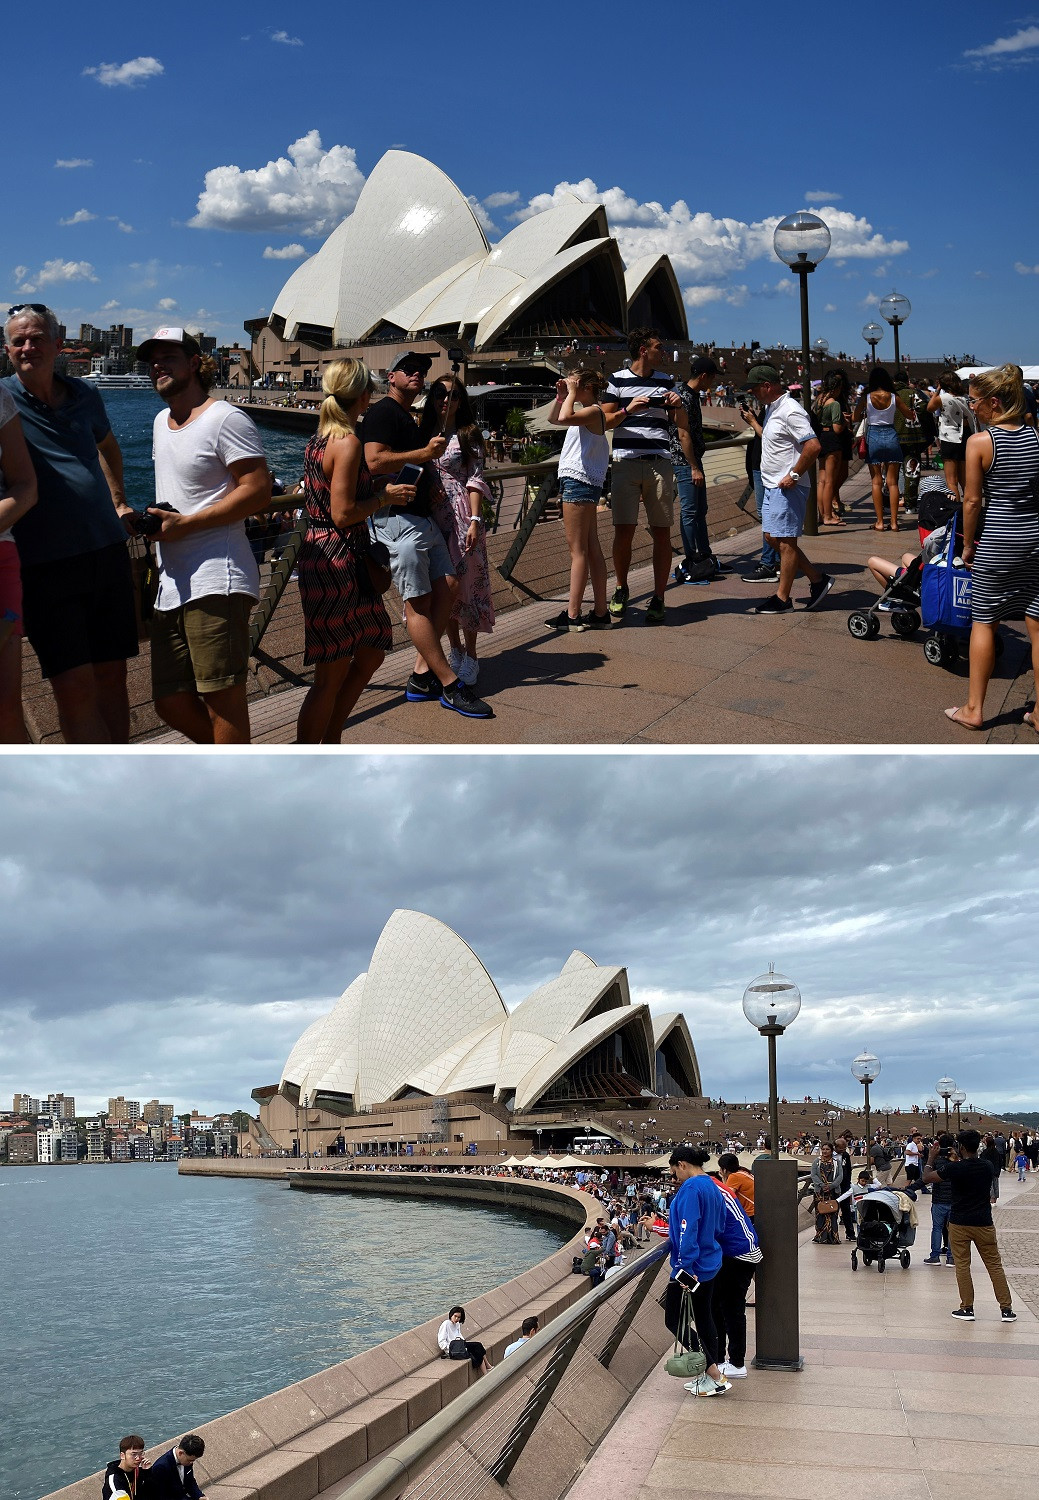 This combination photo created on March 8, 2020 shows people walking along Sydney Harbour, as the Sydney Opera House is seen in the background, in Sydney on December 30, 2017 (top) and on March 8, 2020.